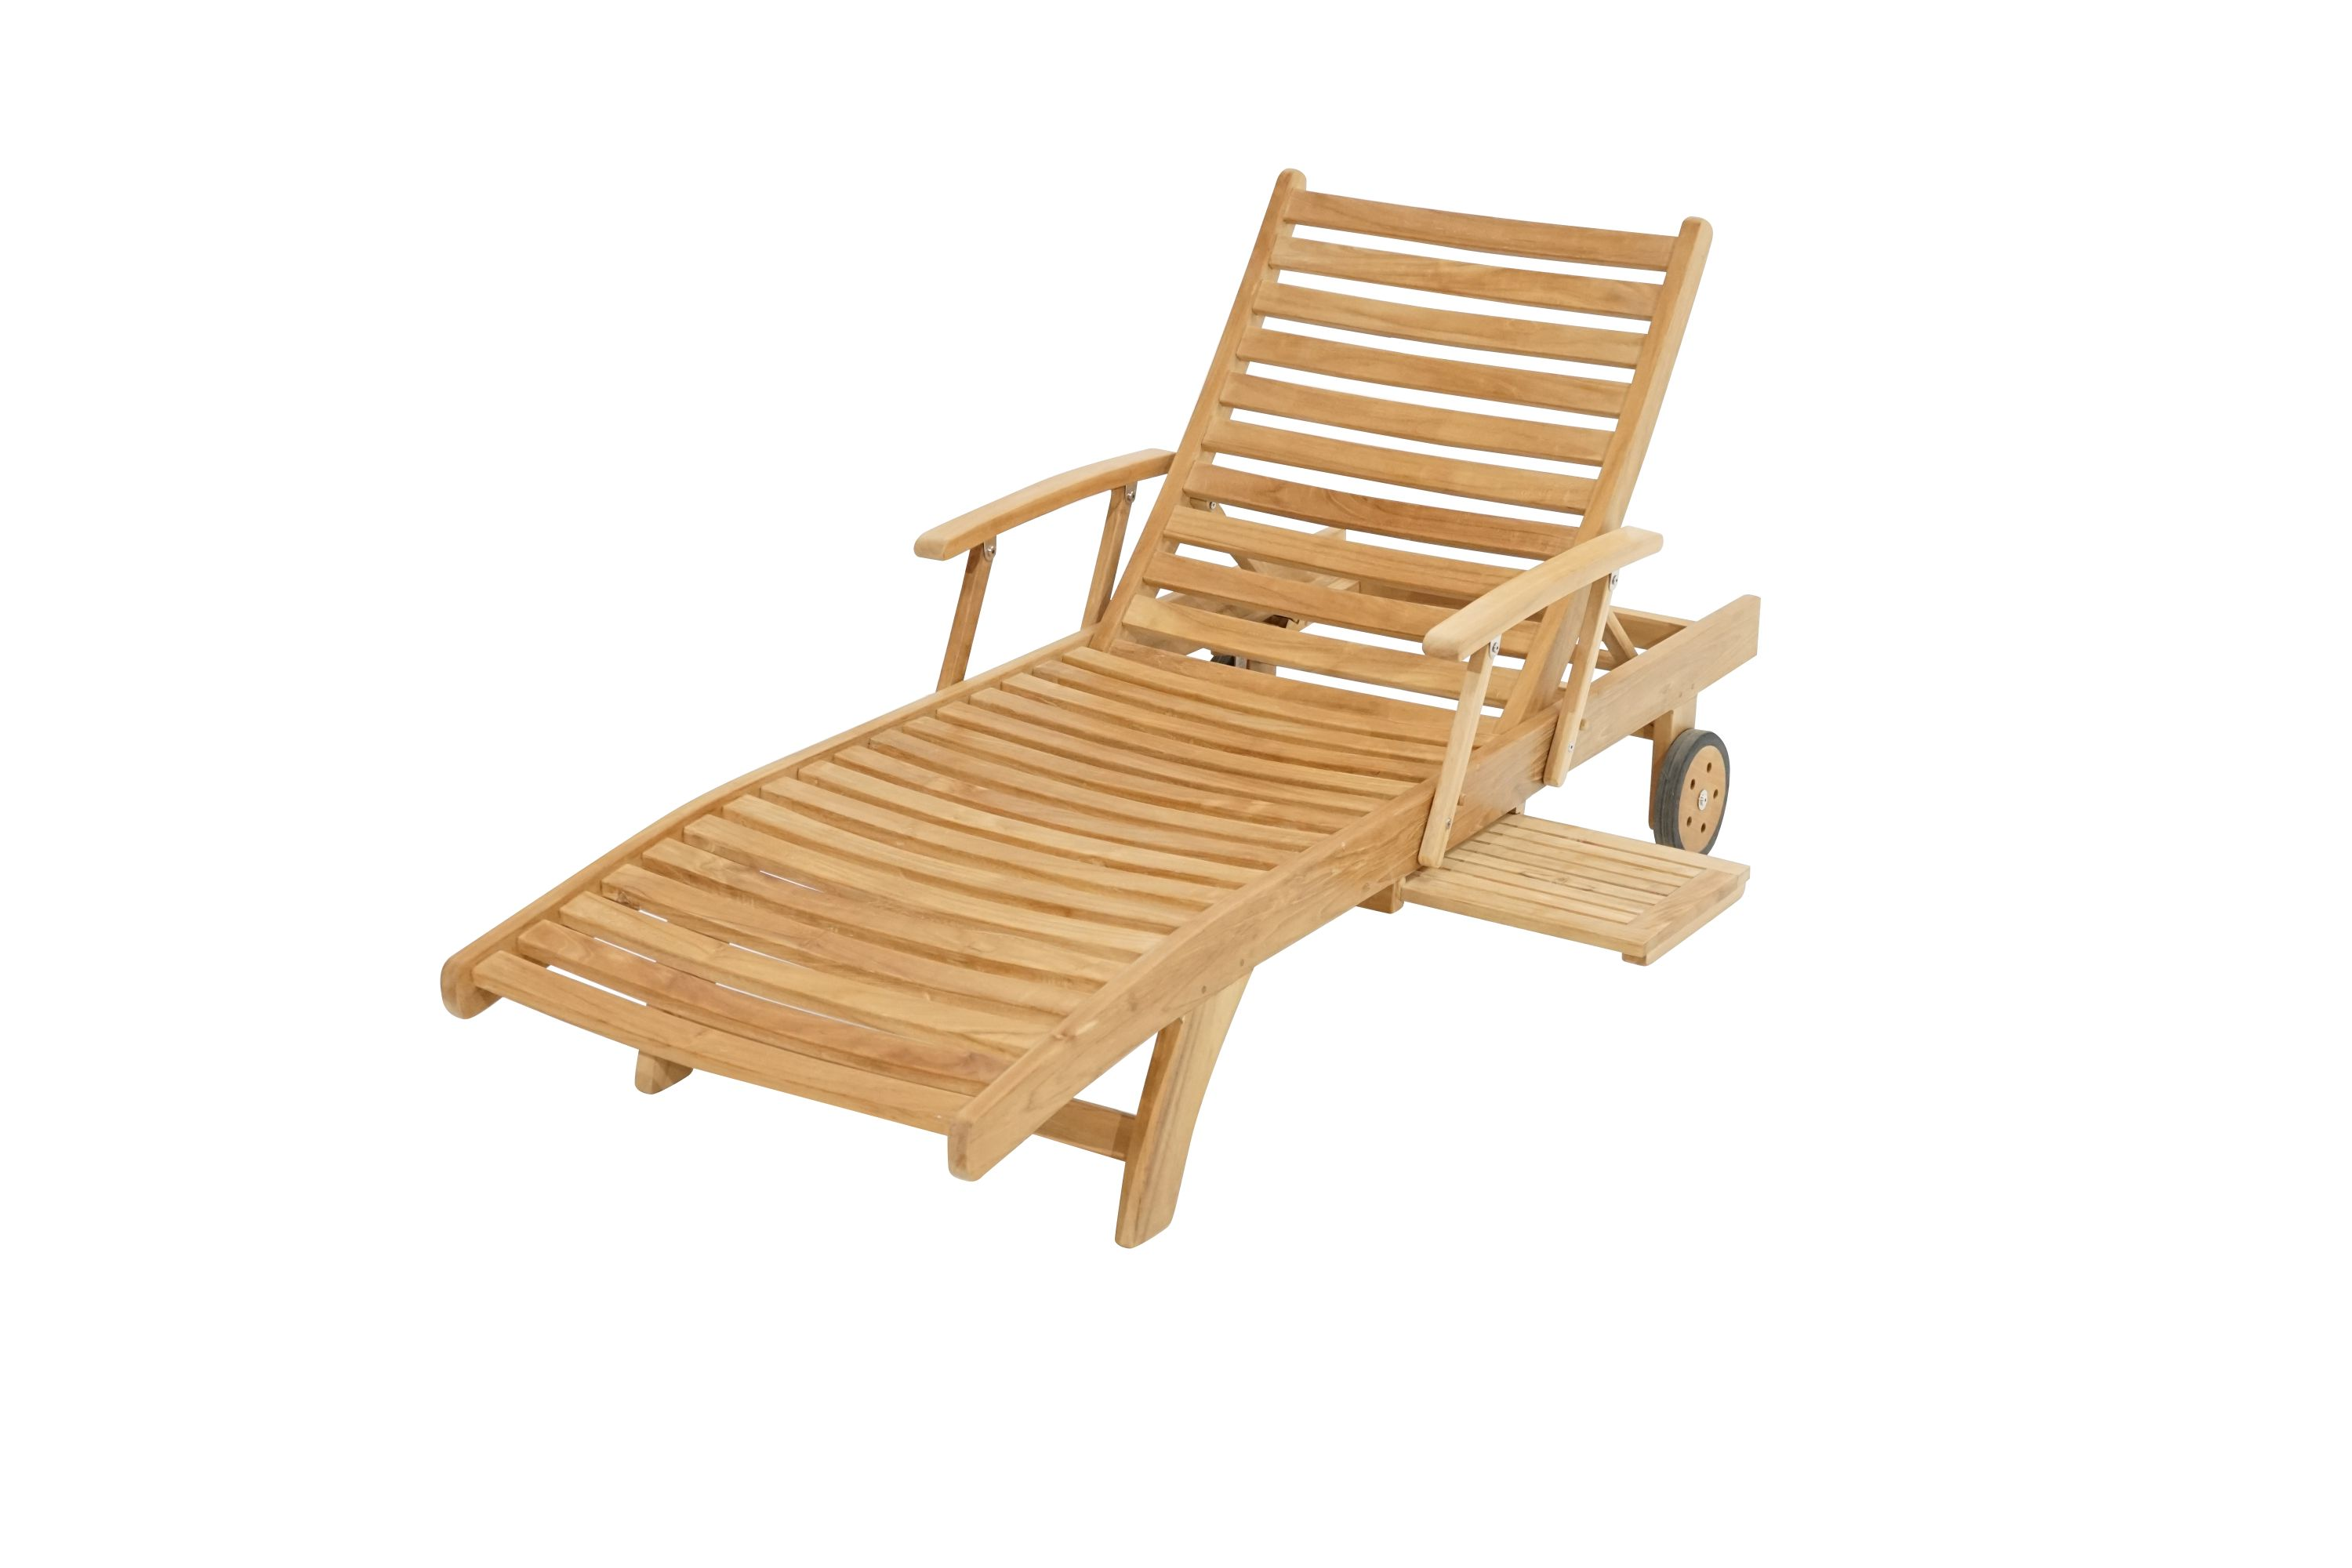 liege passat gartenliegen gartenliegen deckchairs. Black Bedroom Furniture Sets. Home Design Ideas